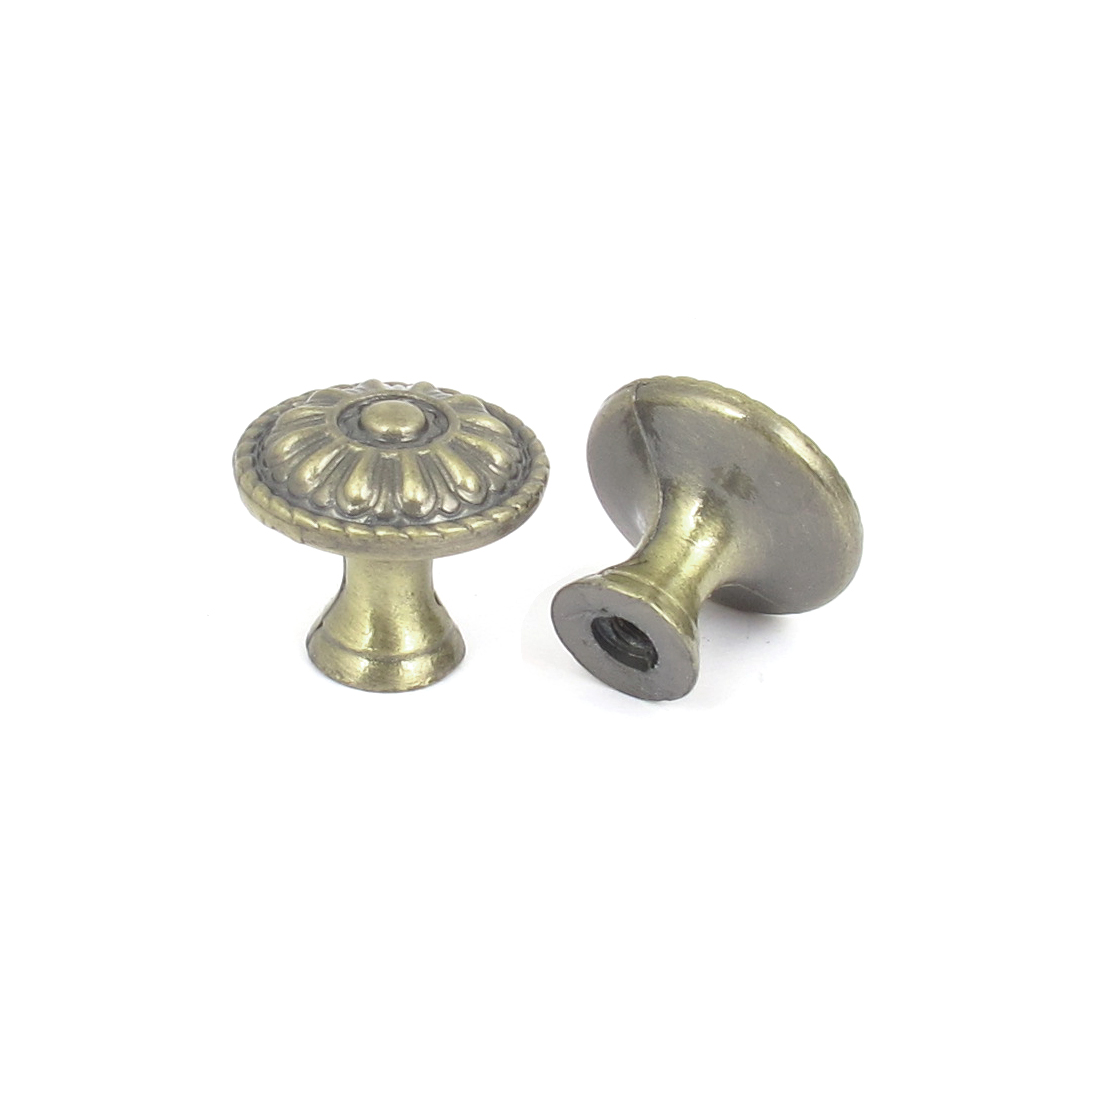 Retro Style Furniture Cabinet Drawer Closet Pull Handle Knob Bronze Tone 2pcs